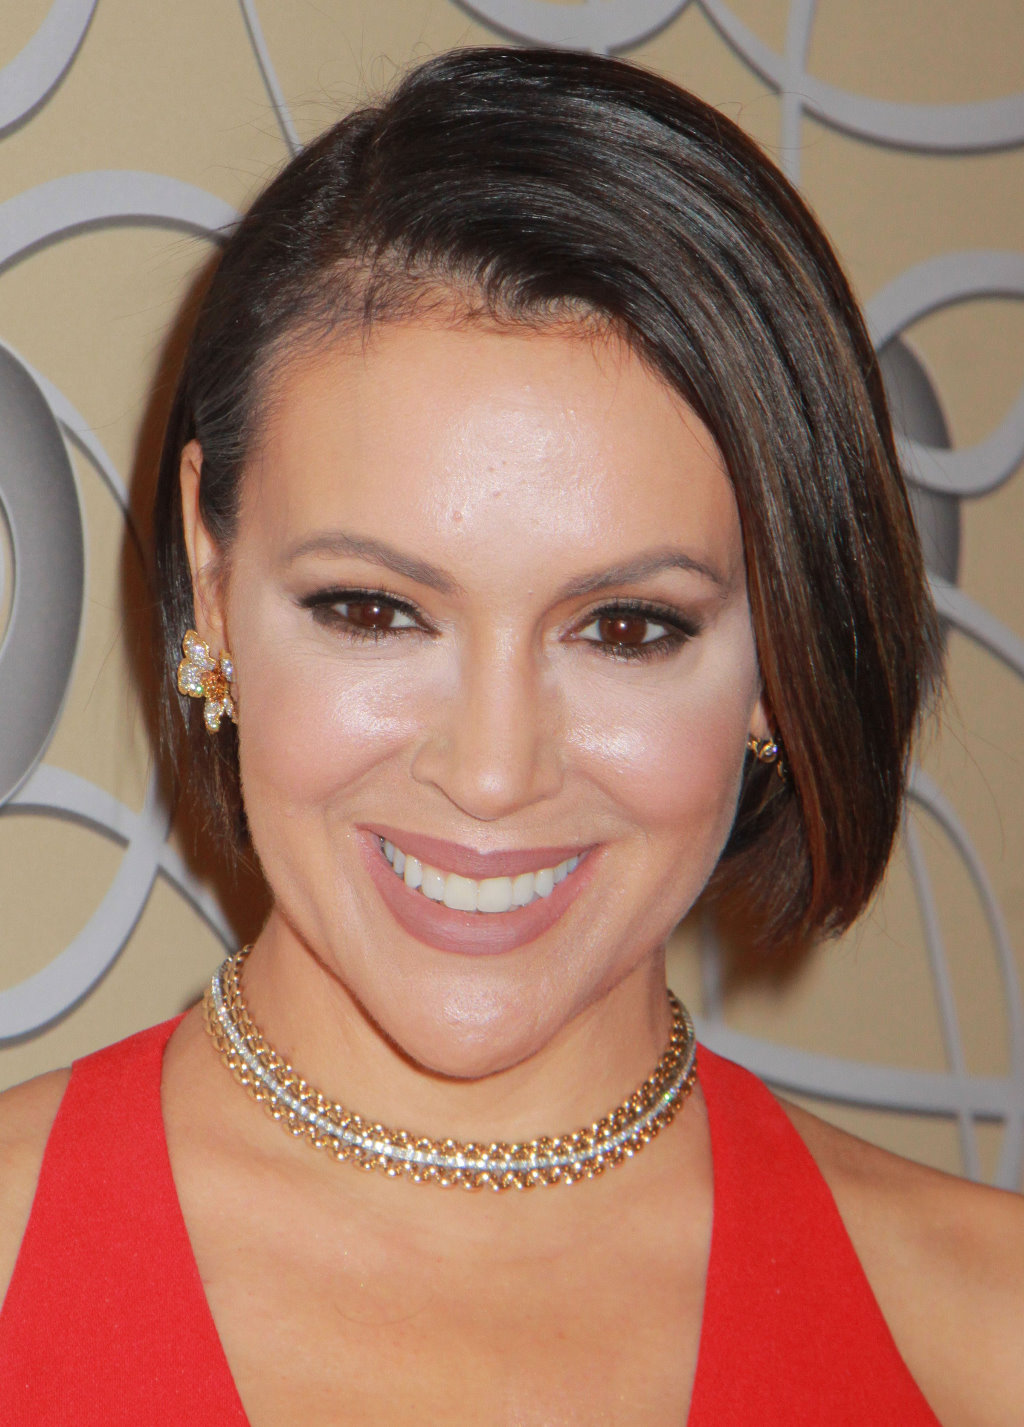 Celebrity Hairstyles Inspiration For A New Hairstyle